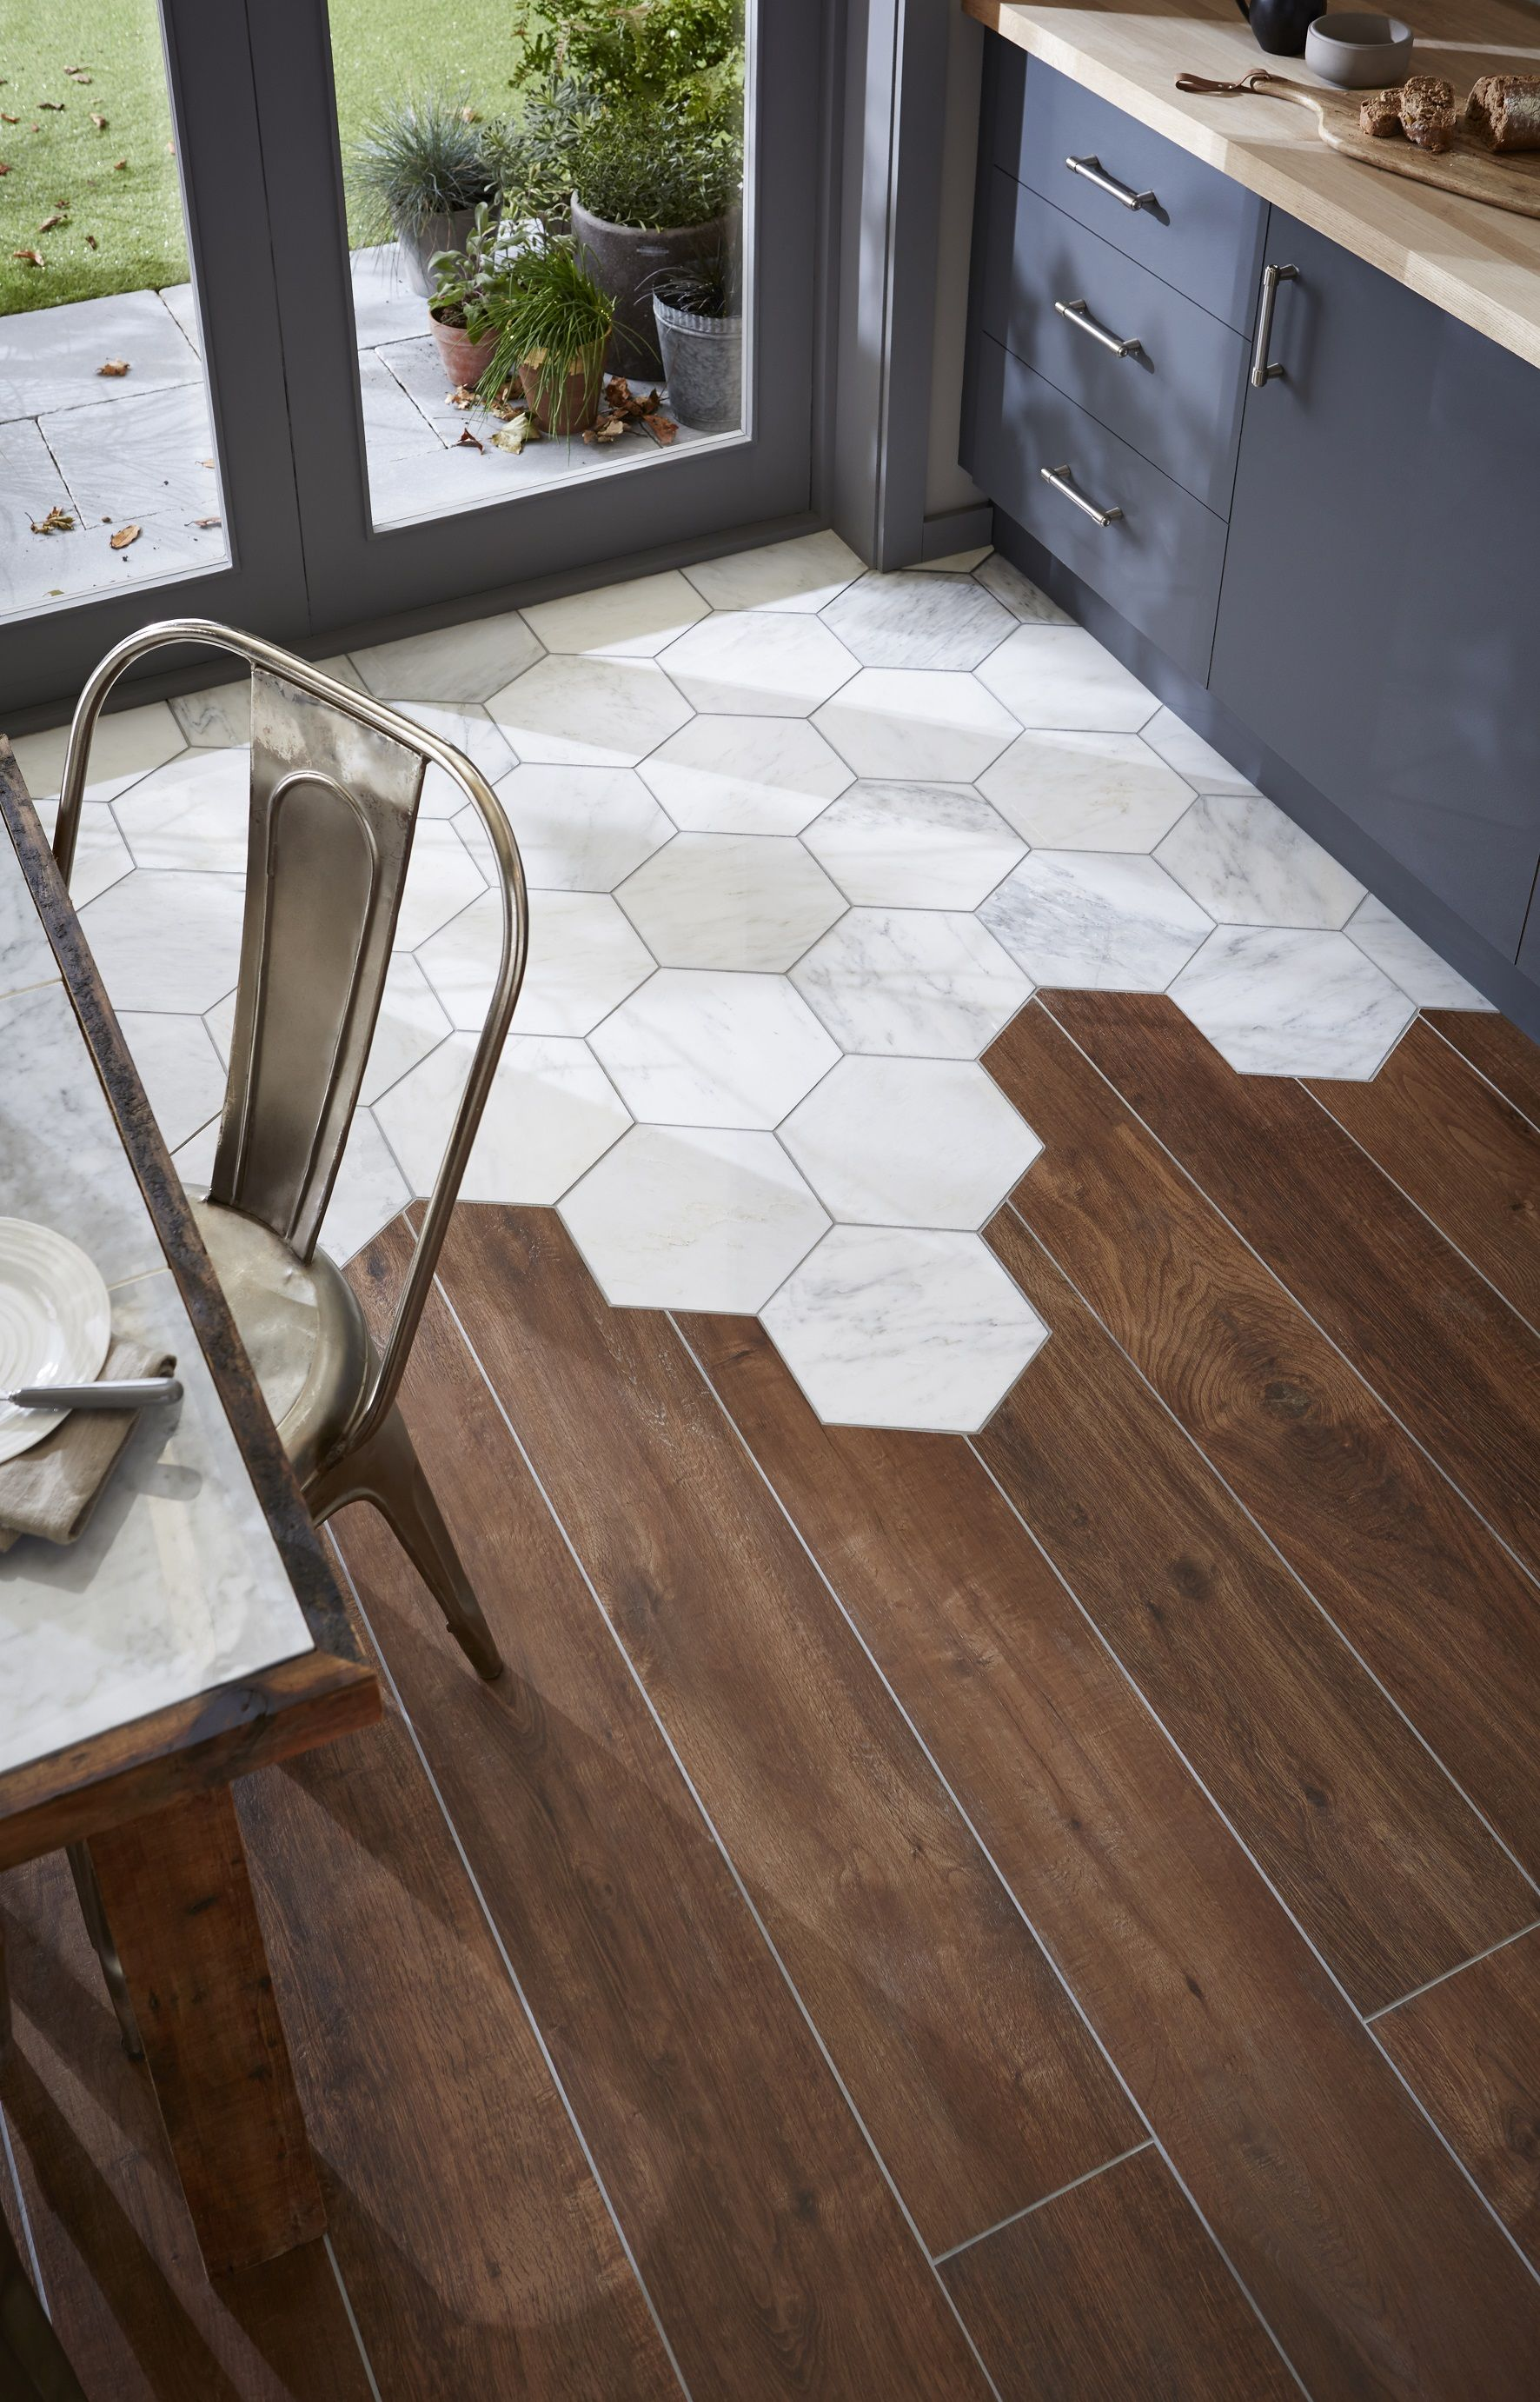 Treverk castagno httptoppstilestprod44667section1427 awesome nice tiling trends 2016 the design sheppard by by modern home dailygadgetfo Image collections